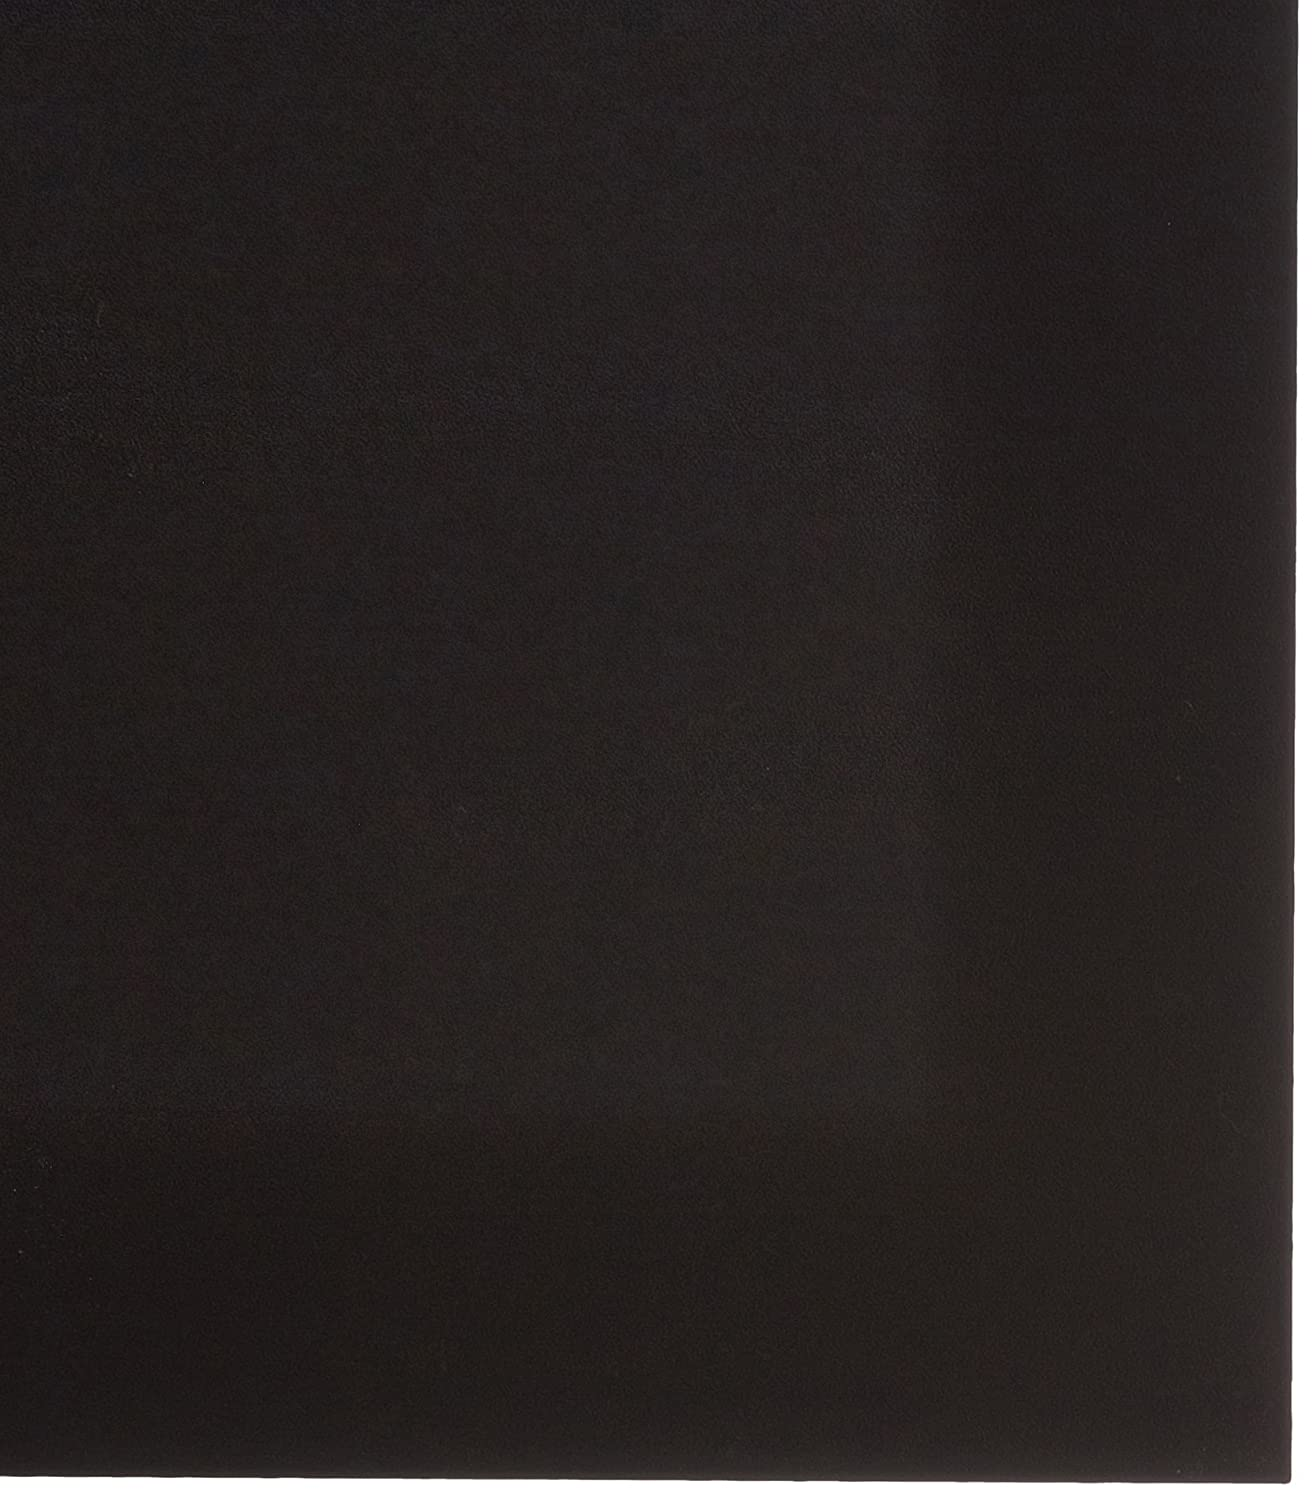 Kydex sheets for sale - Amazon Com Kydex V Sheet 0 028 Thick Black 12 X12 Nominal Industrial Scientific